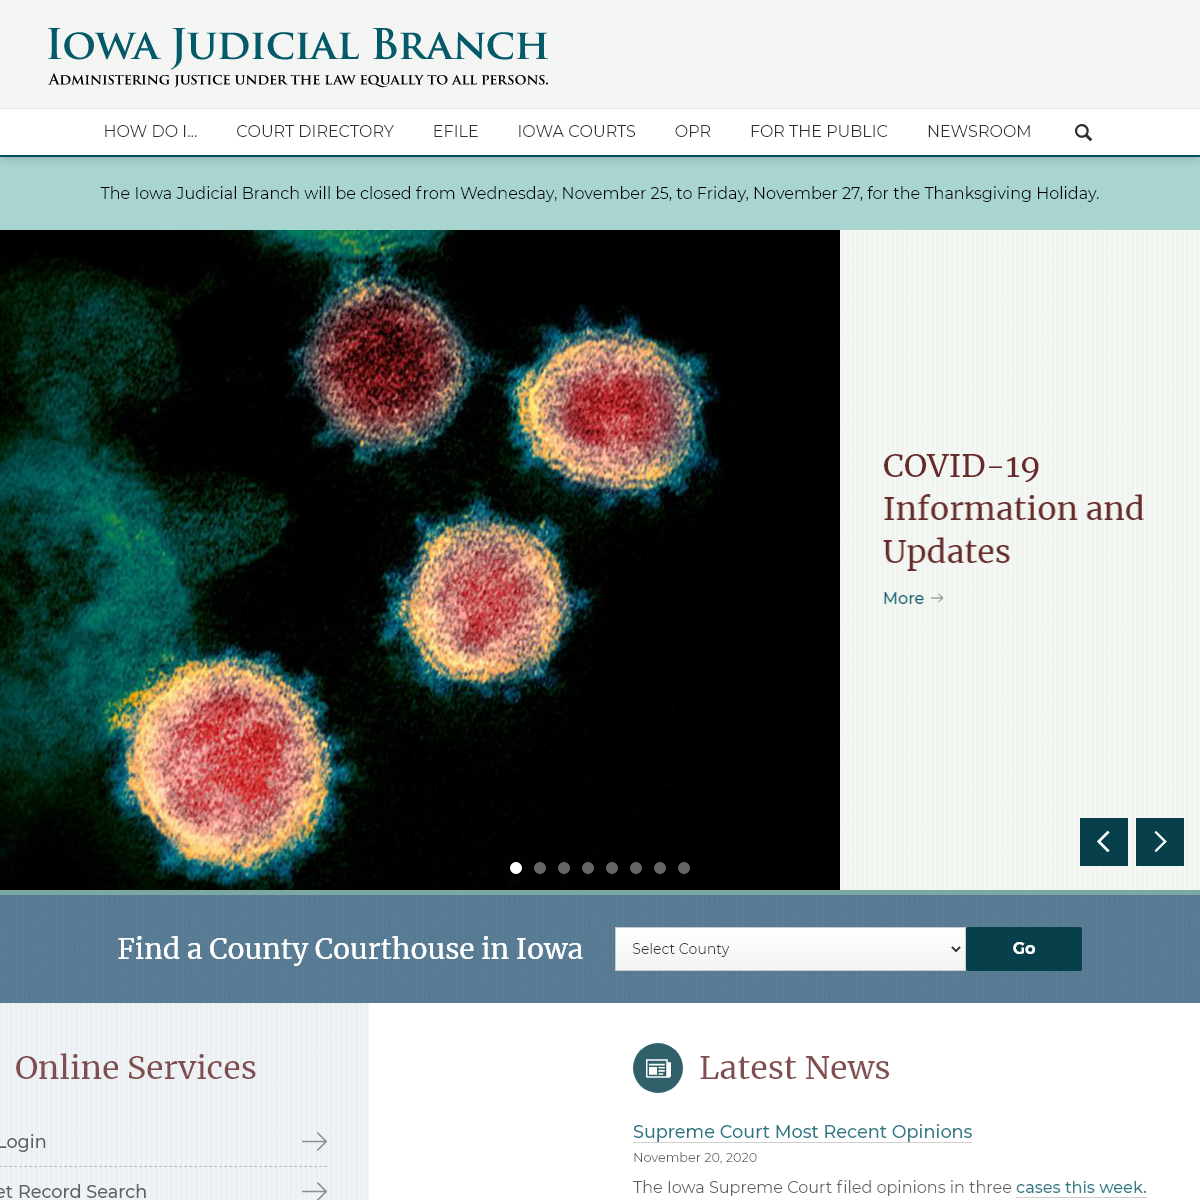 Administering Justice Under Law Equally To All Persons - Iowa Judicial Branch